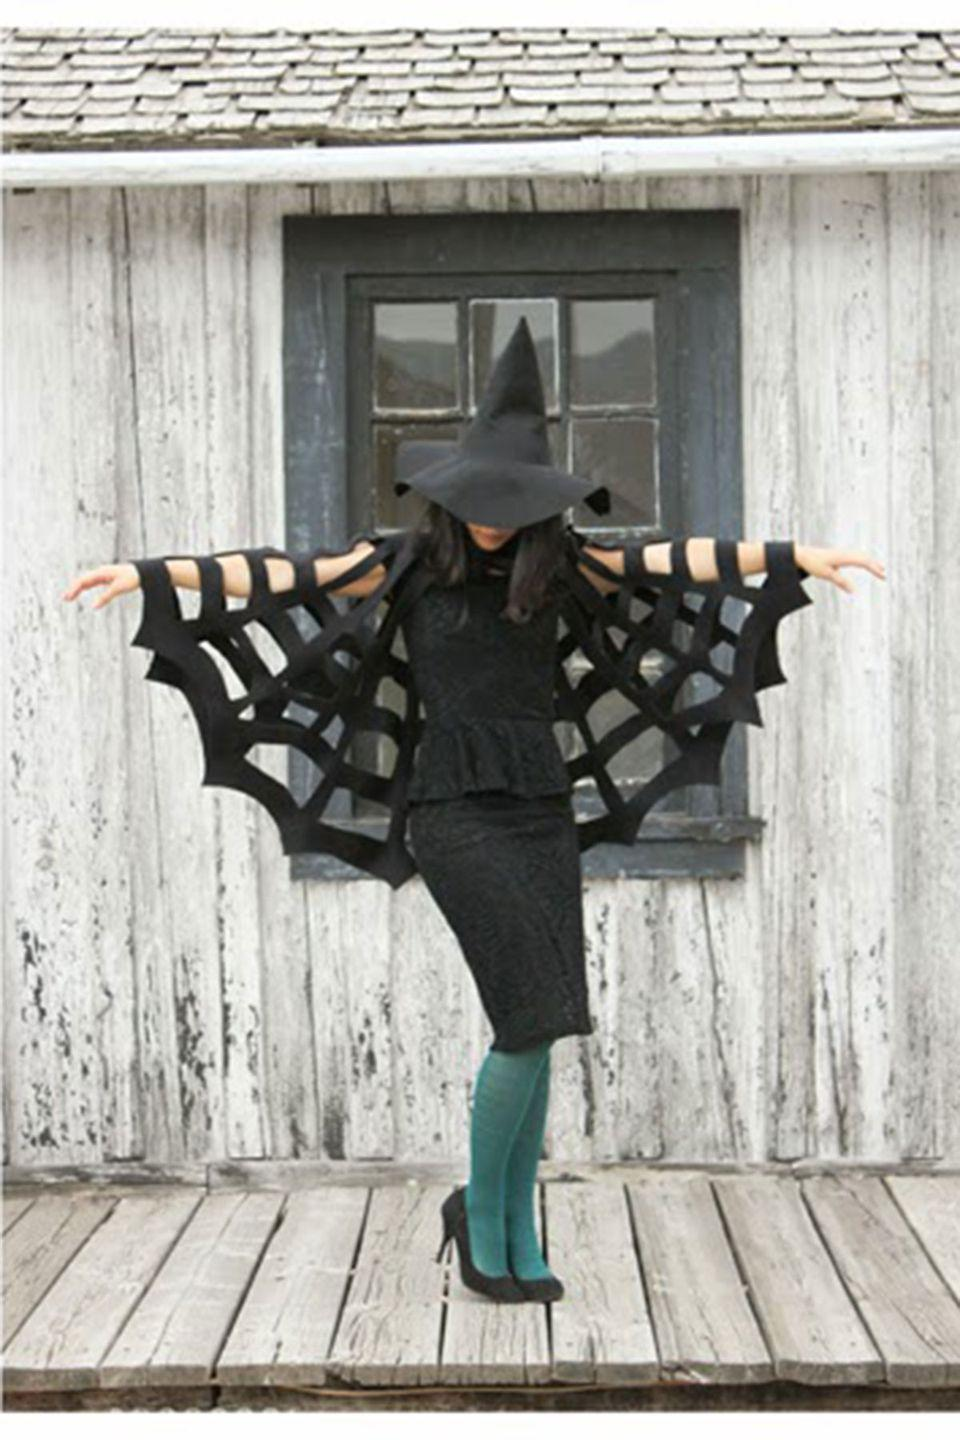 """<p>A cute cutout cape gets the creepy-crawly point across. </p><p><strong>Get the tutorial at <a href=""""http://www.deliacreates.com/no-sew-halloween-spiderweb-cape-tutorial/"""" rel=""""nofollow noopener"""" target=""""_blank"""" data-ylk=""""slk:Delia Creates"""" class=""""link rapid-noclick-resp"""">Delia Creates</a>. </strong></p><p><strong><a class=""""link rapid-noclick-resp"""" href=""""https://www.amazon.com/Double-Sided-Sweatshirt-Fleece-Fabric/dp/B06XJS4YDD/?tag=syn-yahoo-20&ascsubtag=%5Bartid%7C10050.g.4571%5Bsrc%7Cyahoo-us"""" rel=""""nofollow noopener"""" target=""""_blank"""" data-ylk=""""slk:SHOP FLEECE FABRIC"""">SHOP FLEECE FABRIC</a></strong></p>"""